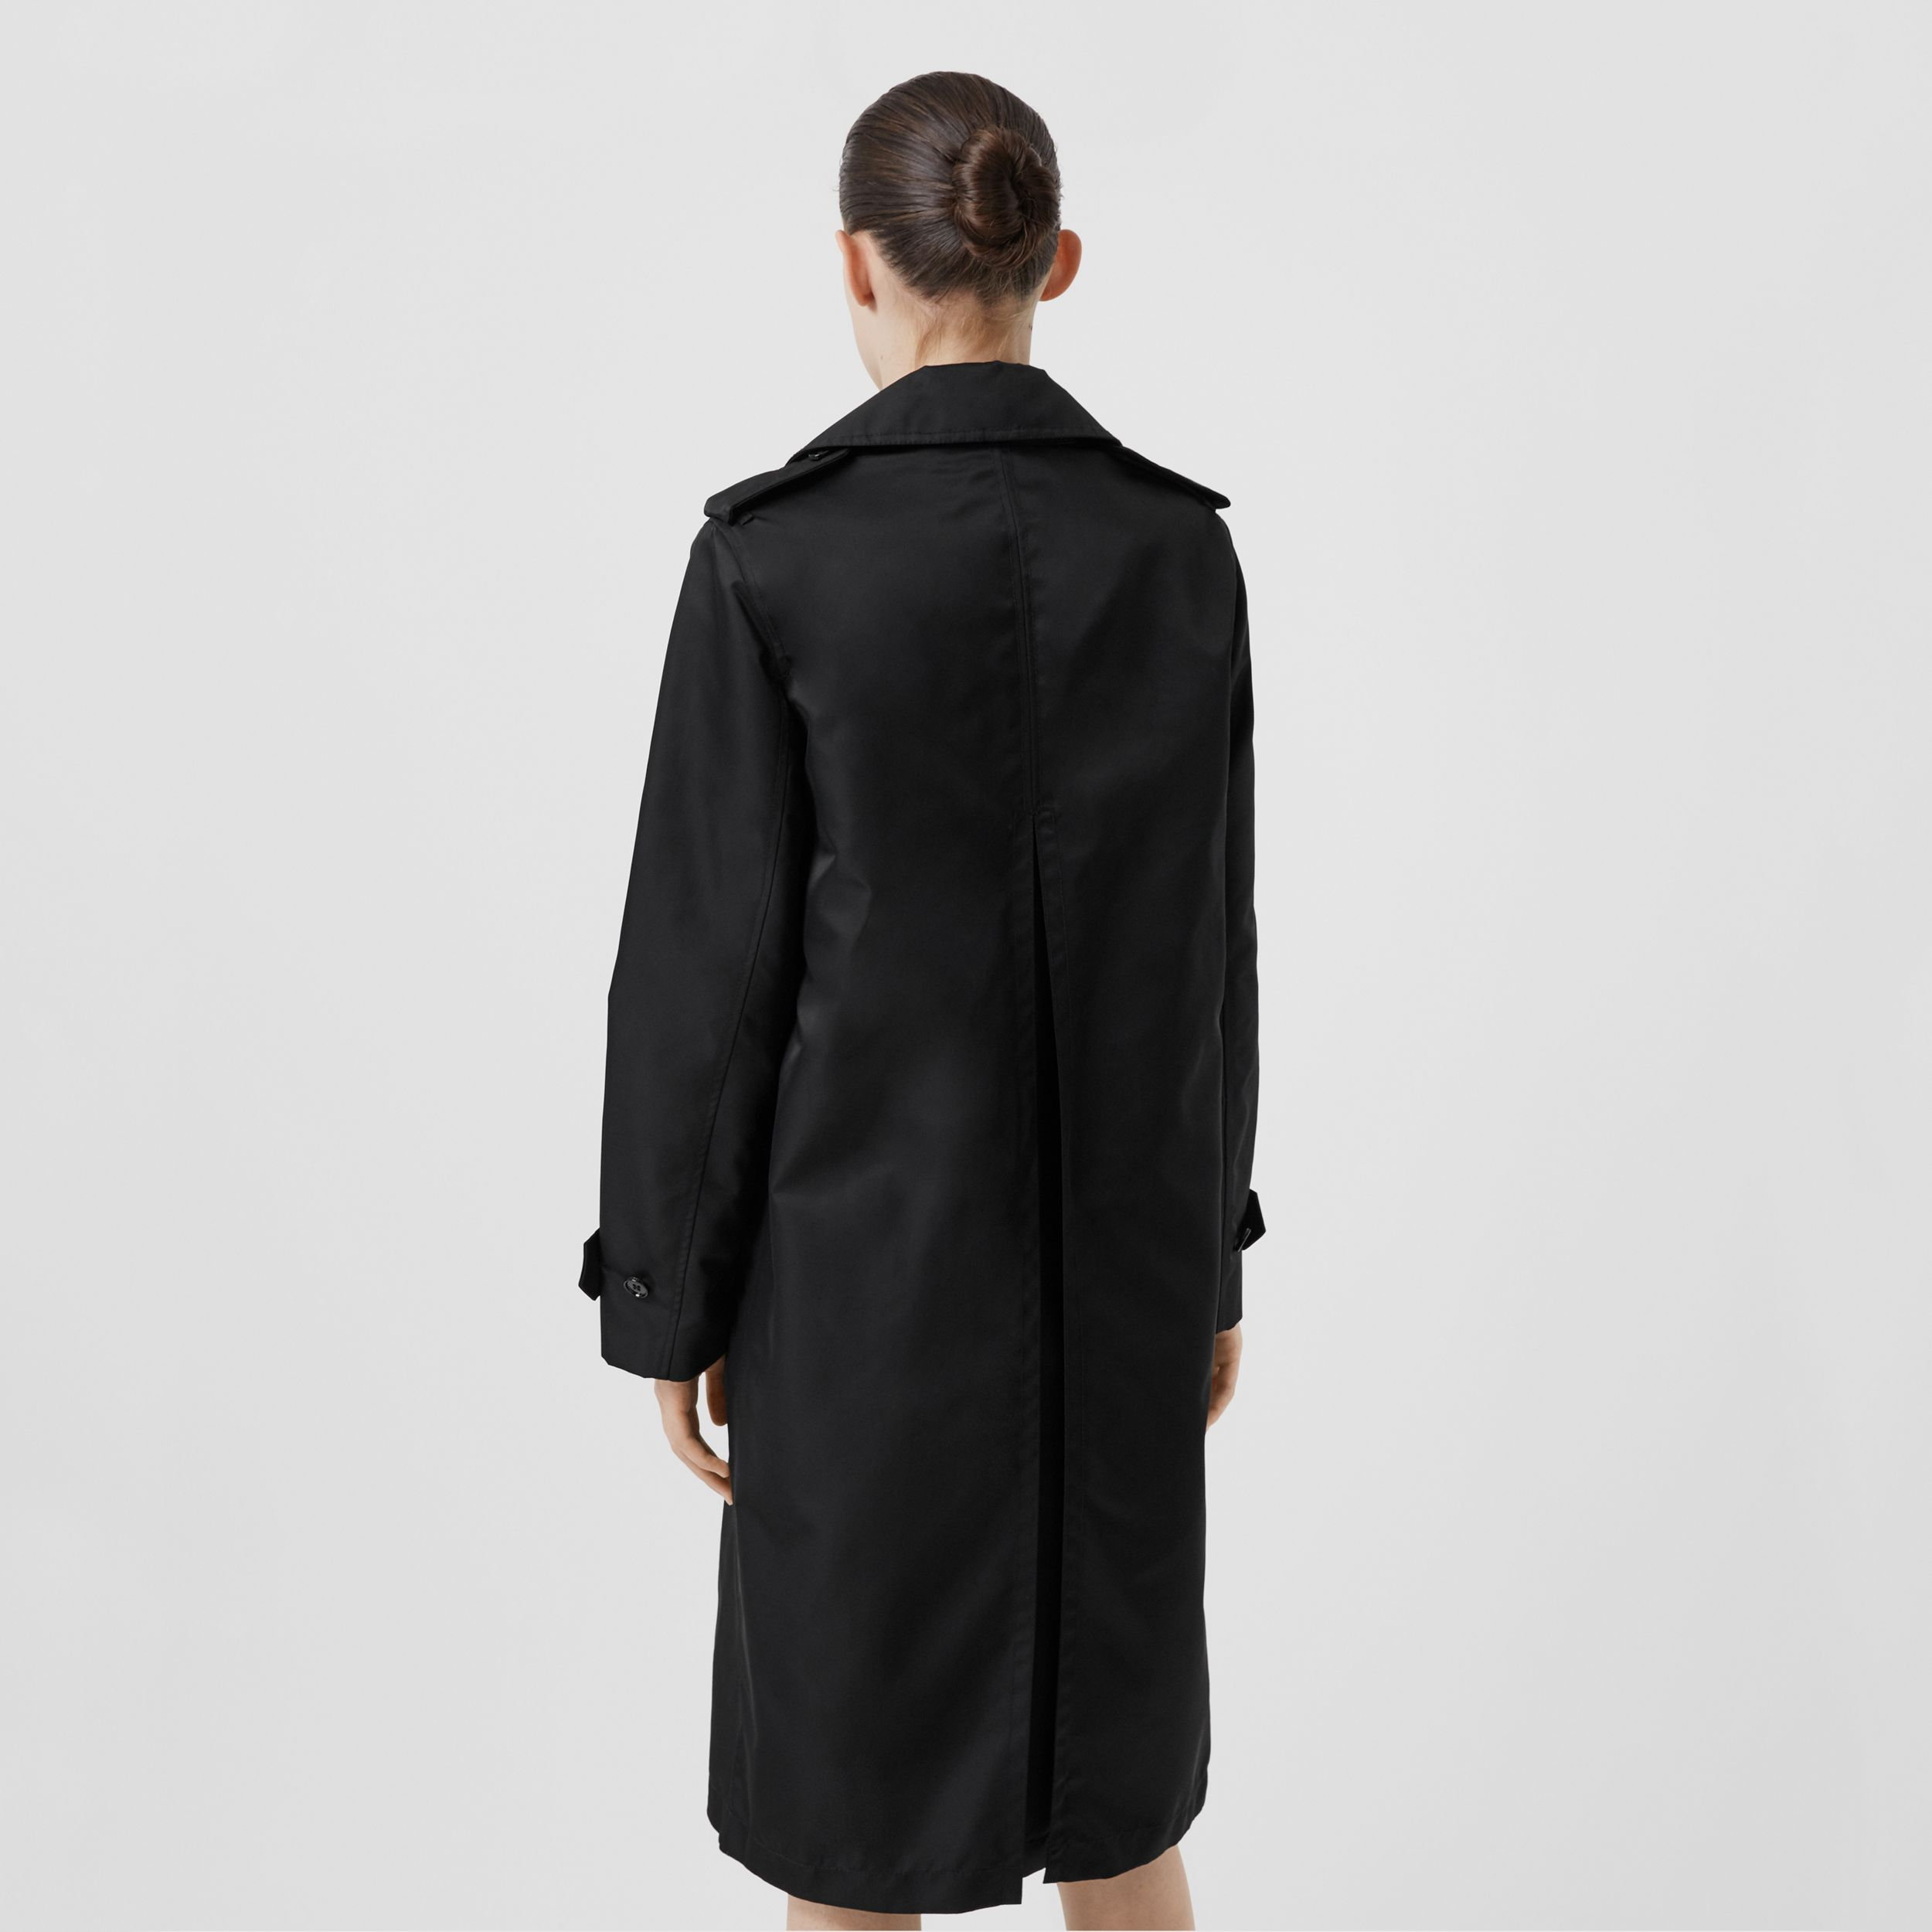 Logo Graphic Nylon Car Coat in Black - Women | Burberry - 3